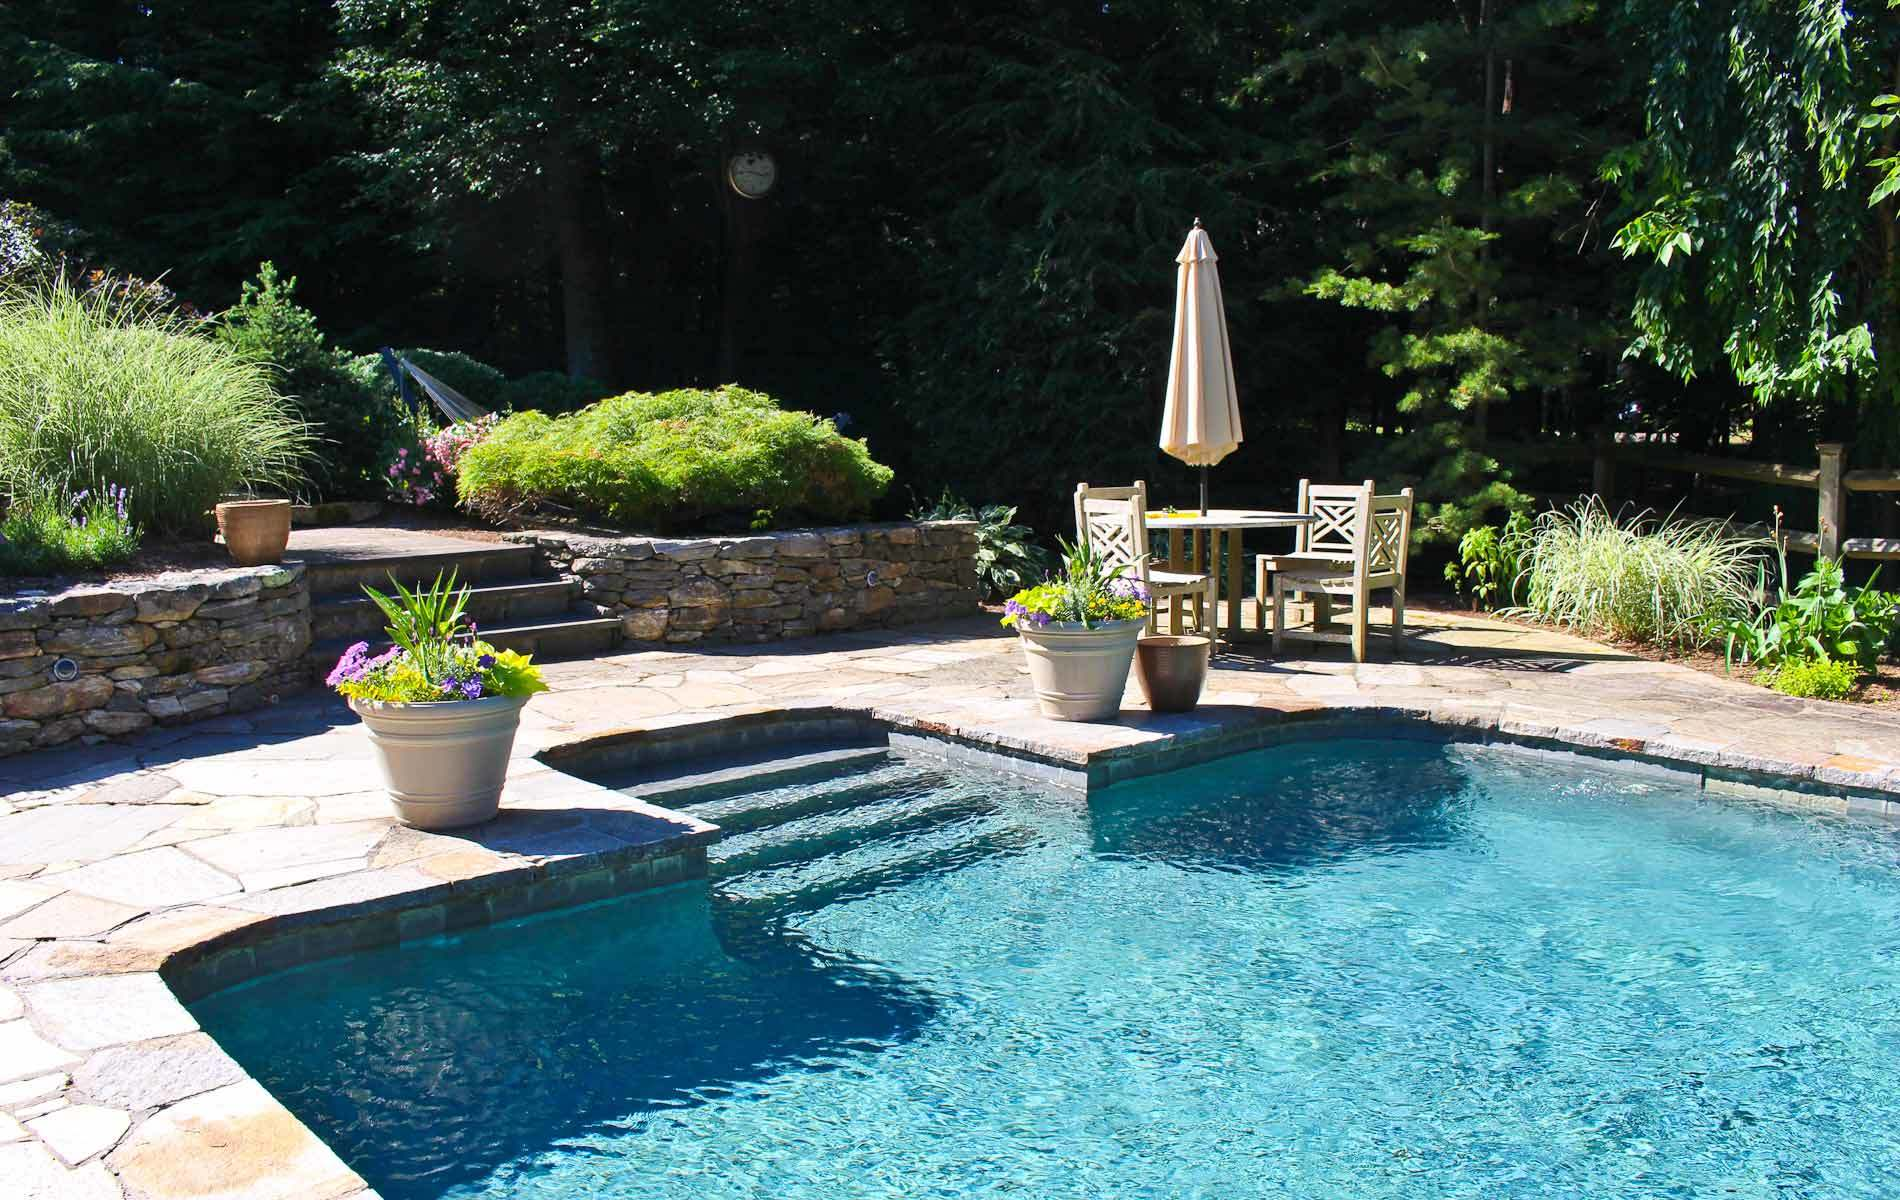 Homes With Swimming Pool For Sale In Newtown Ct Find And Buy Houses With Pool Dagny 39 S Real Estate